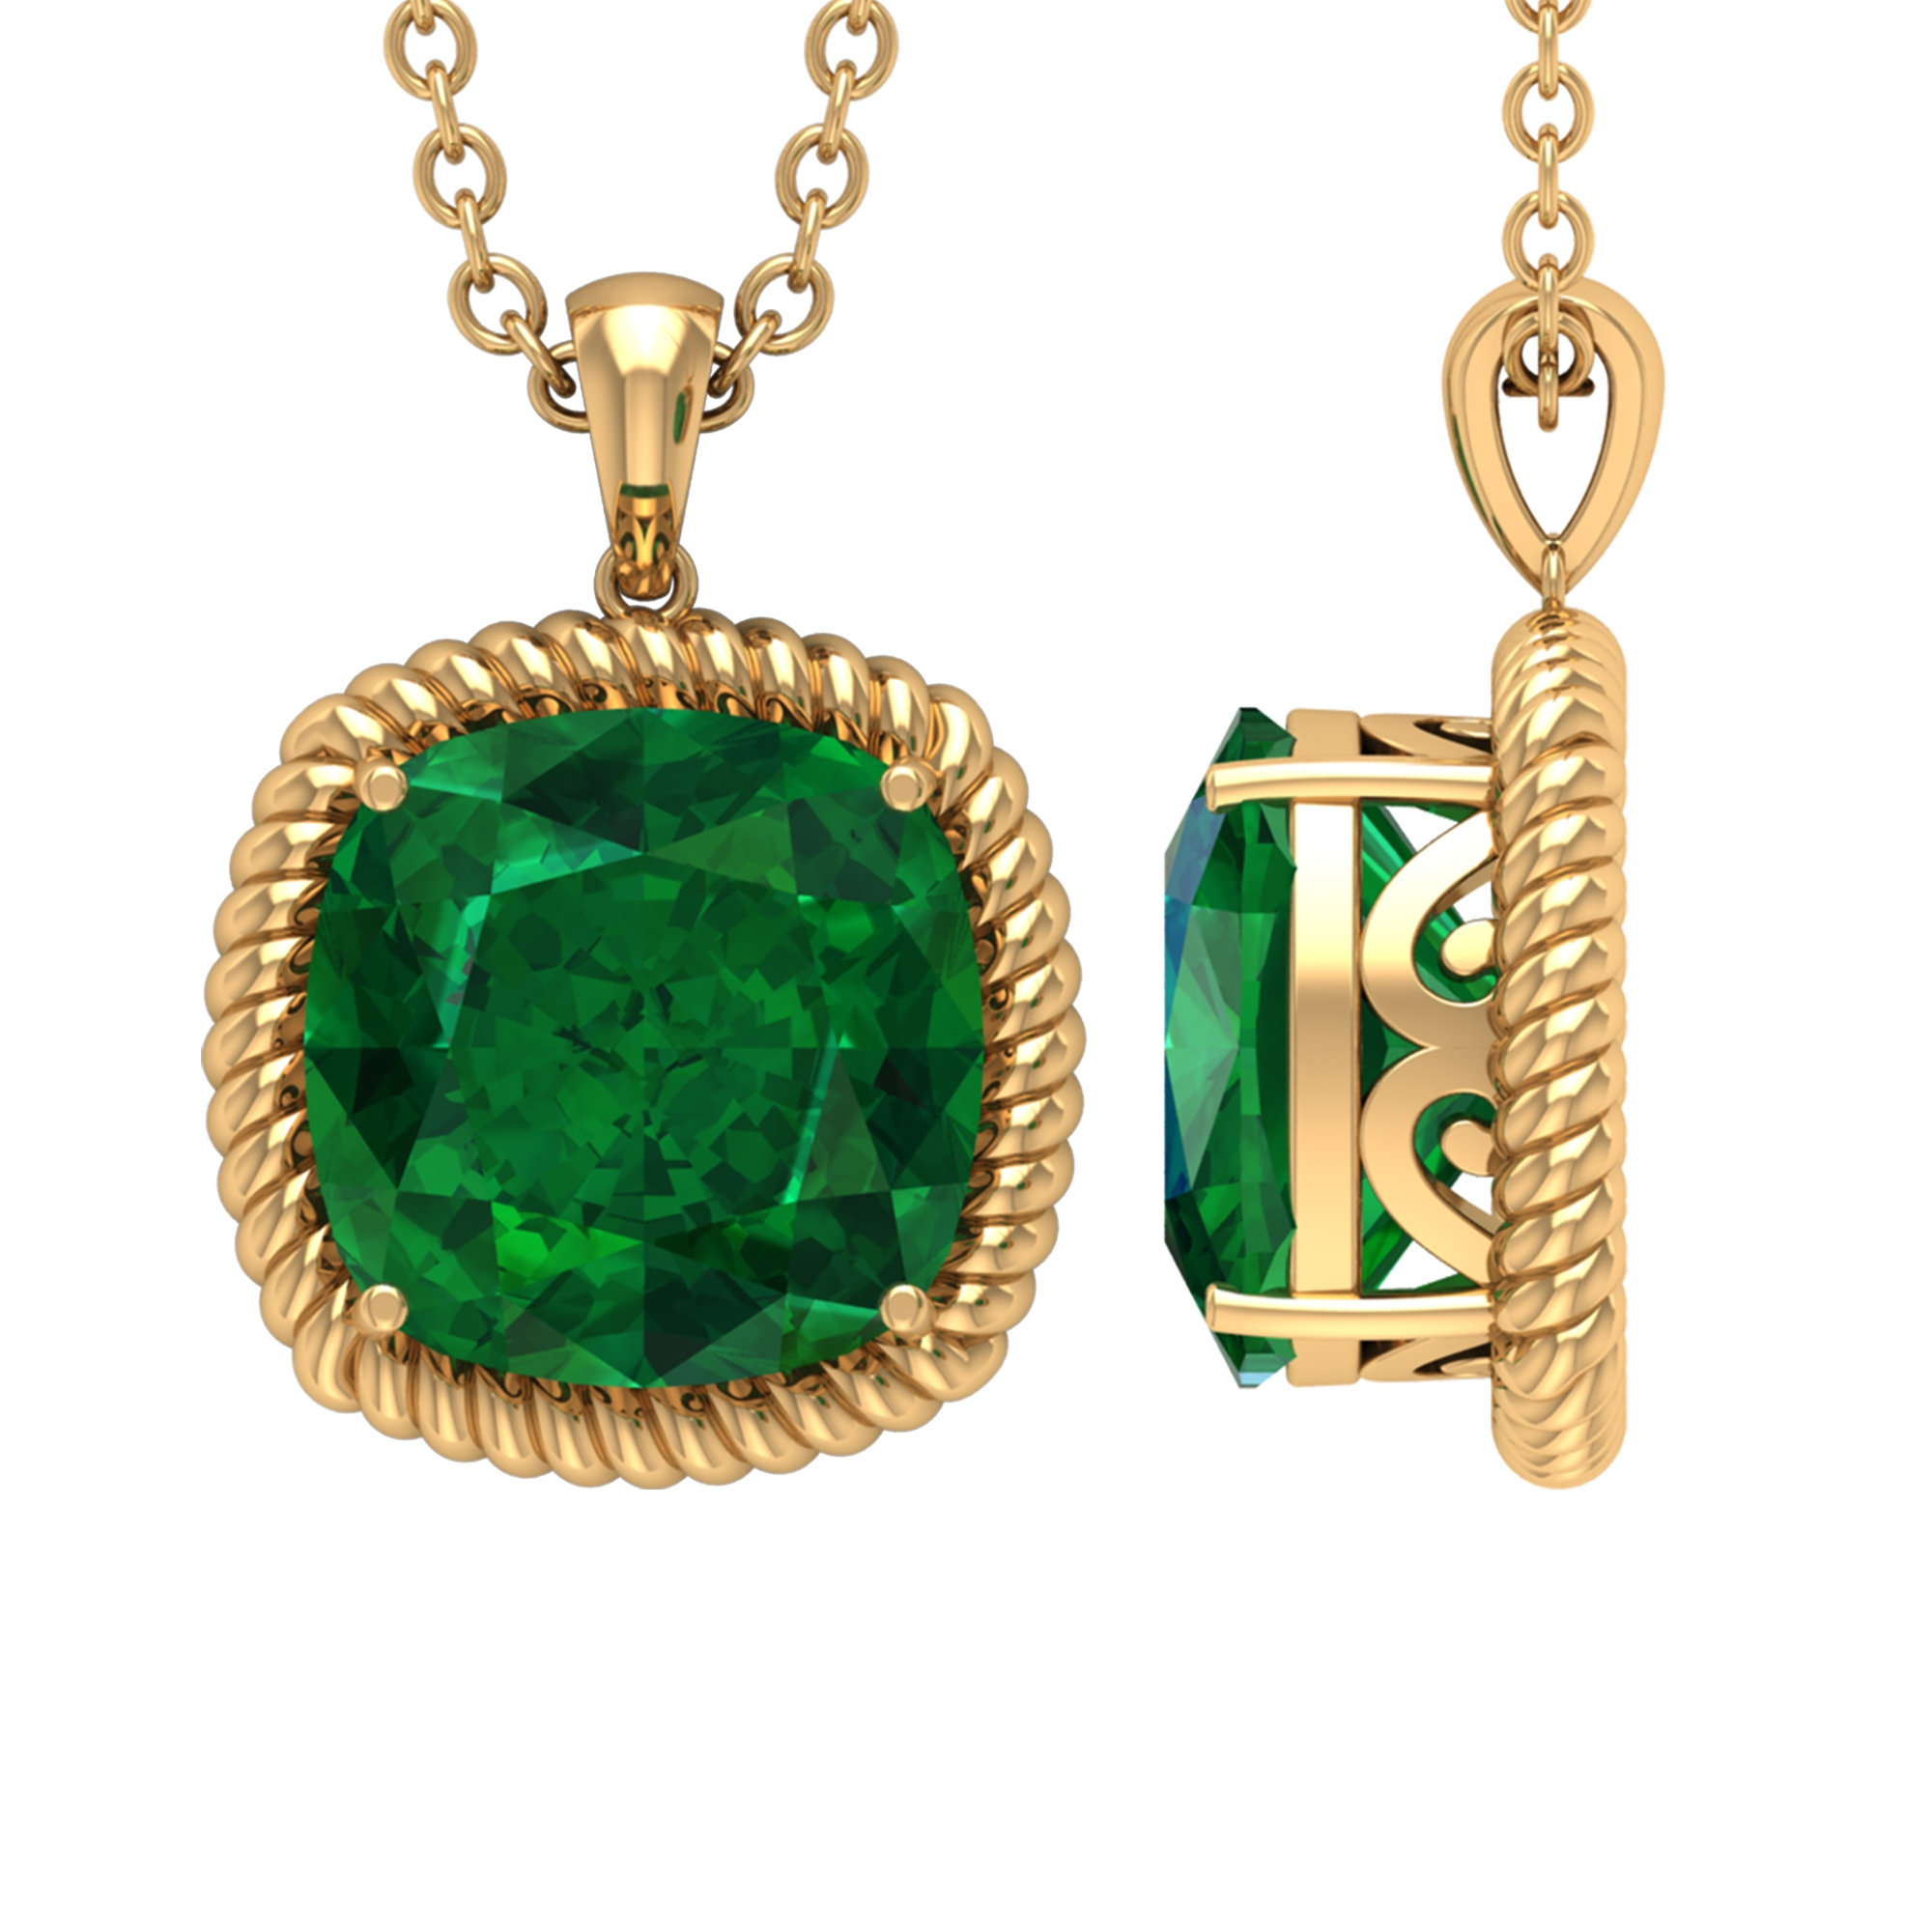 Vintage Inspired Solitaire Pendant with 8 MM Cushion Cut Emerald in 4 Prong Setting with Rope Frame